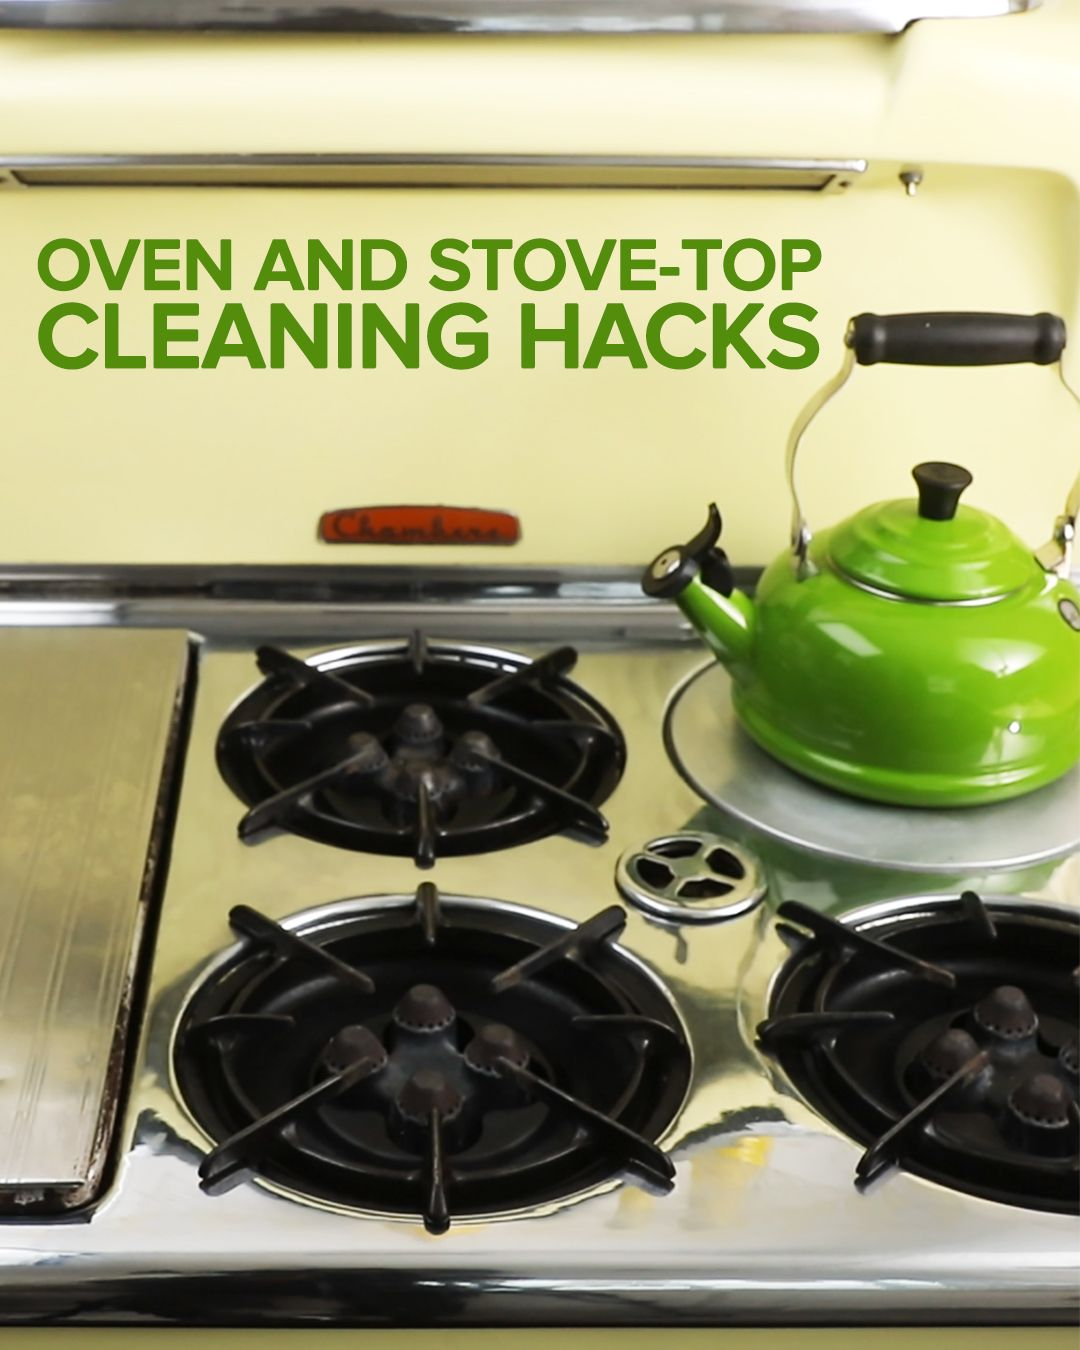 Oven And Stovetop Cleaning Hacks Cleaning Hacks Clean Stove Top